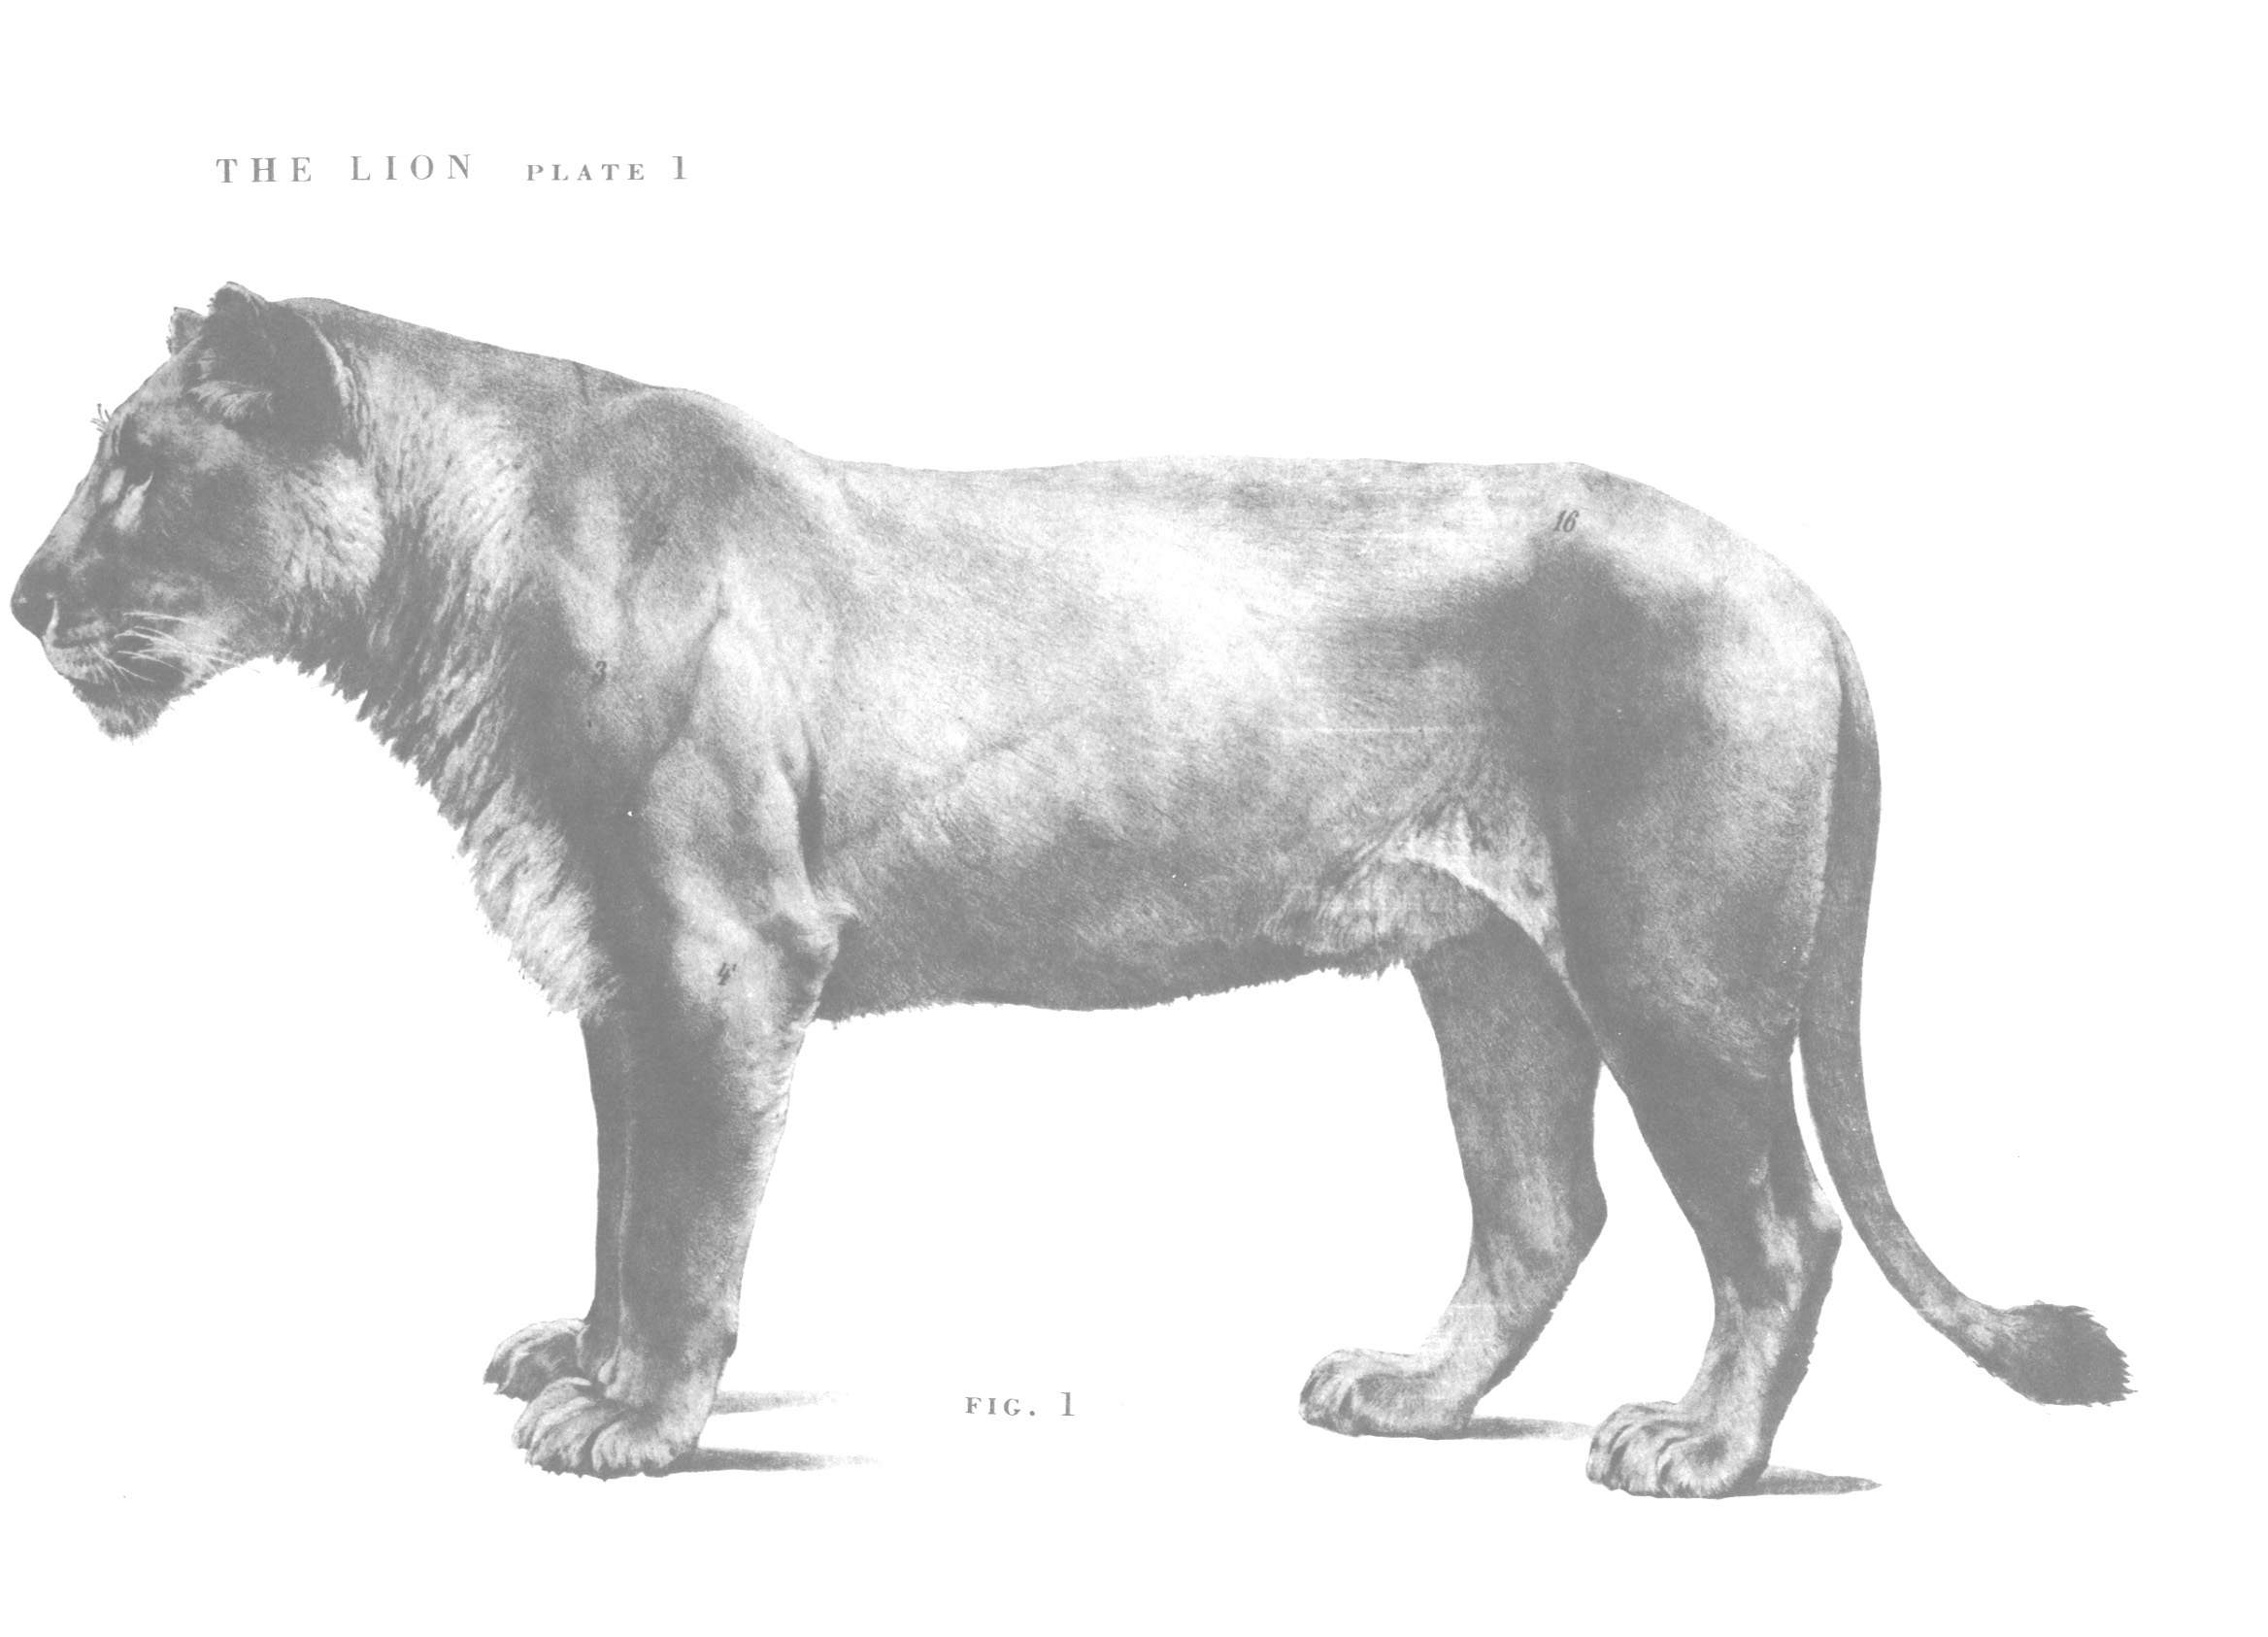 Lion skull anatomy